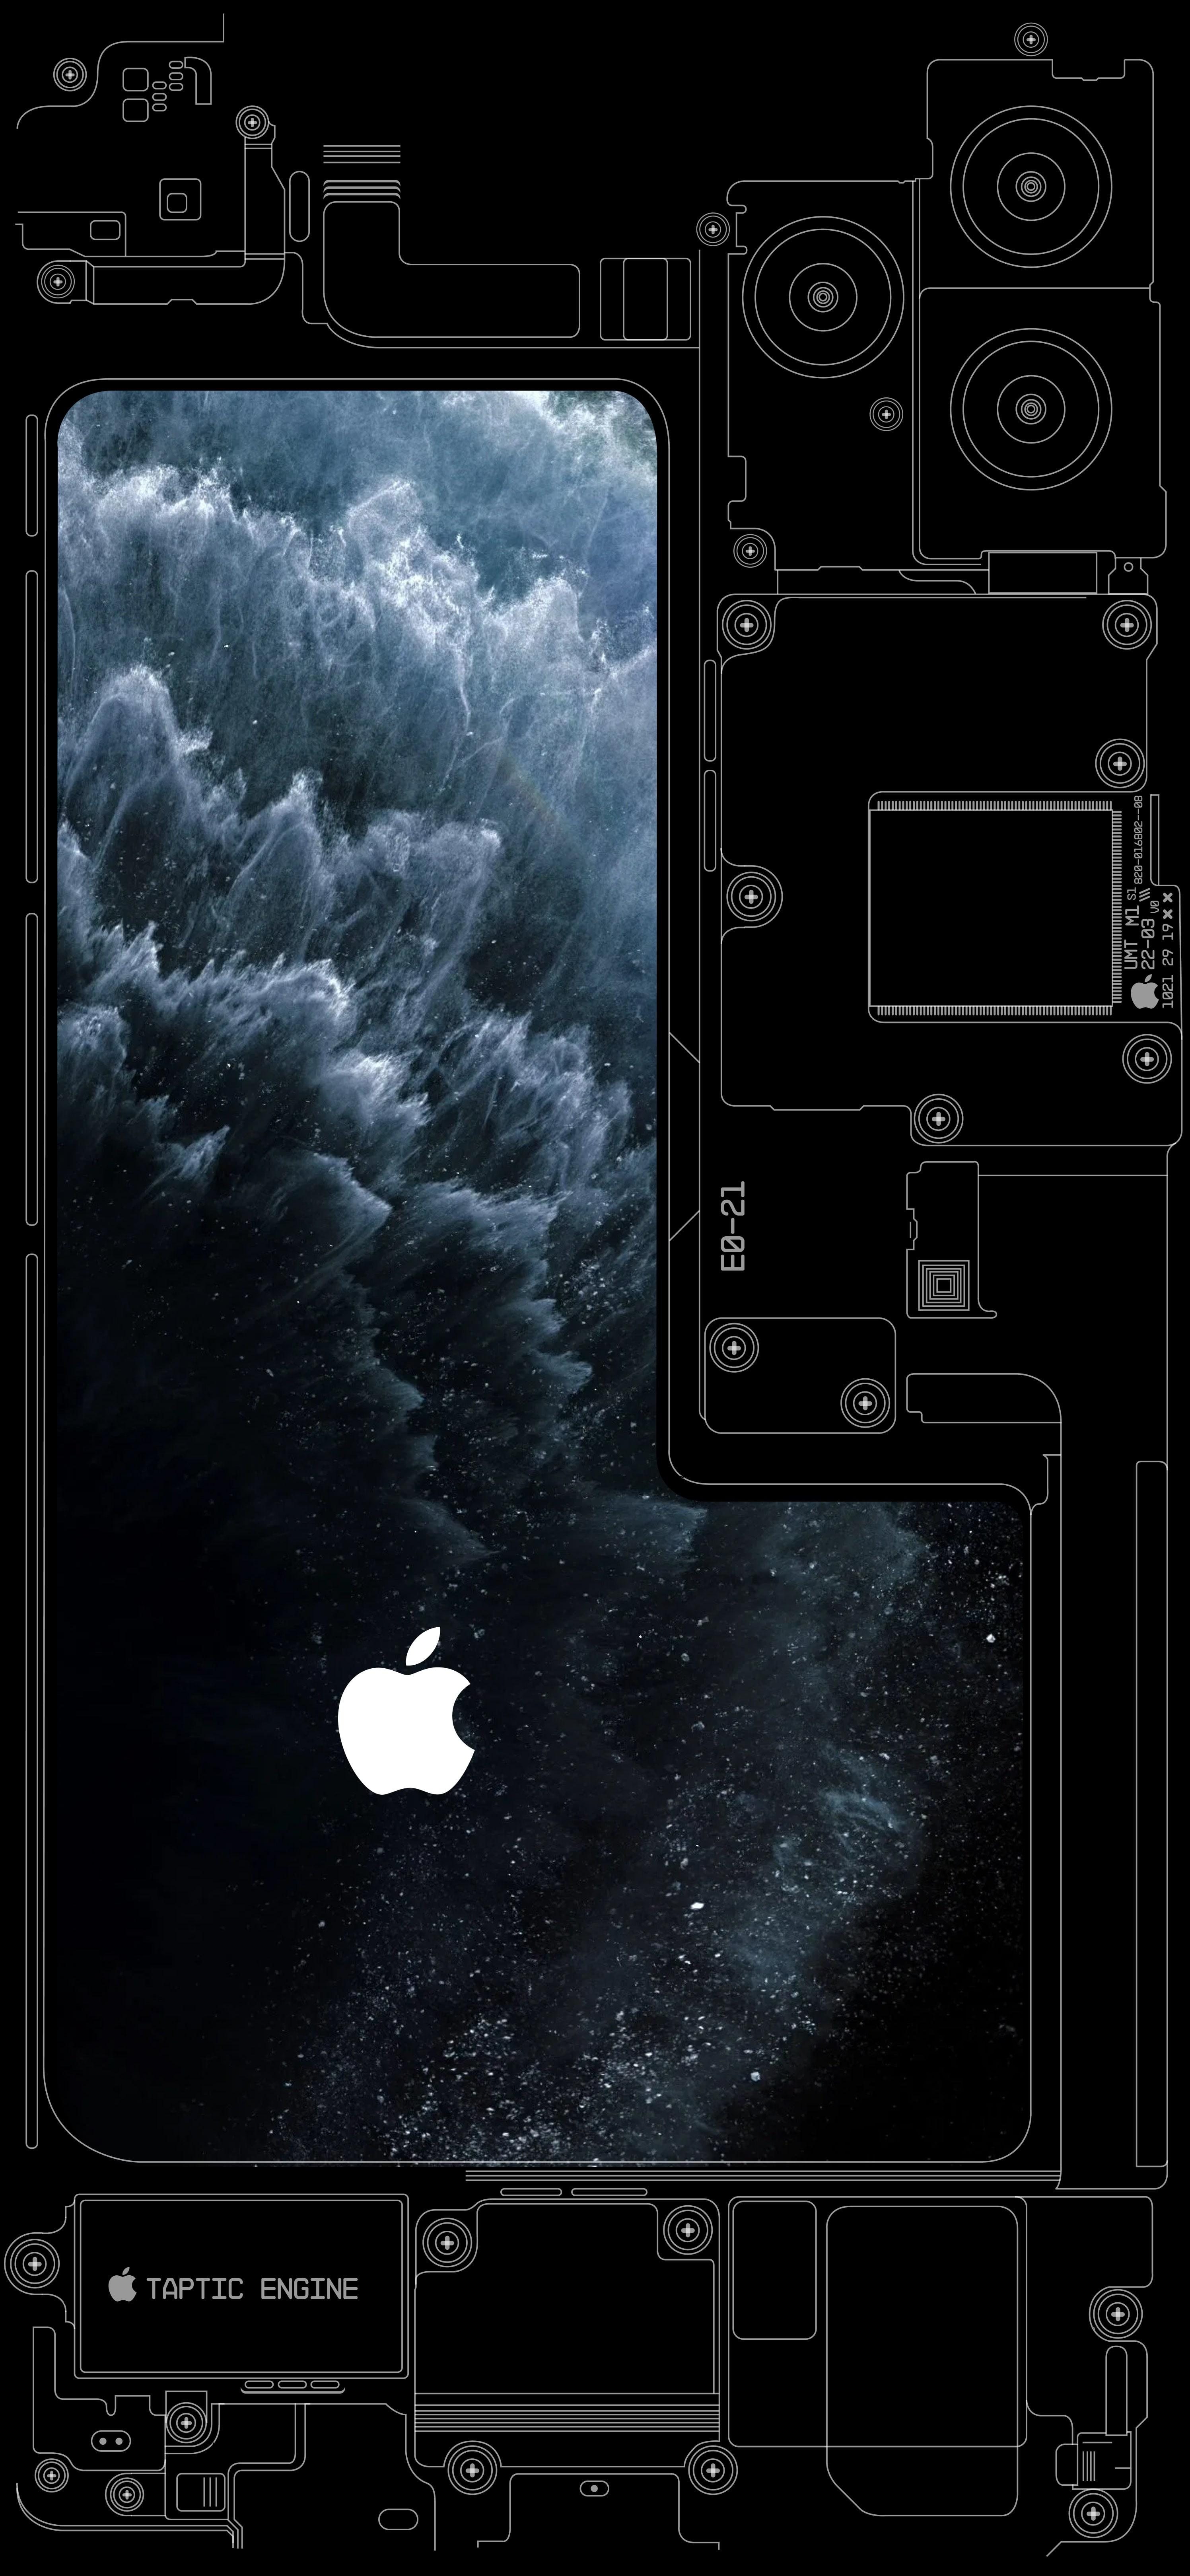 Engine iPhone Wallpapers   Top Free Engine iPhone Backgrounds ...